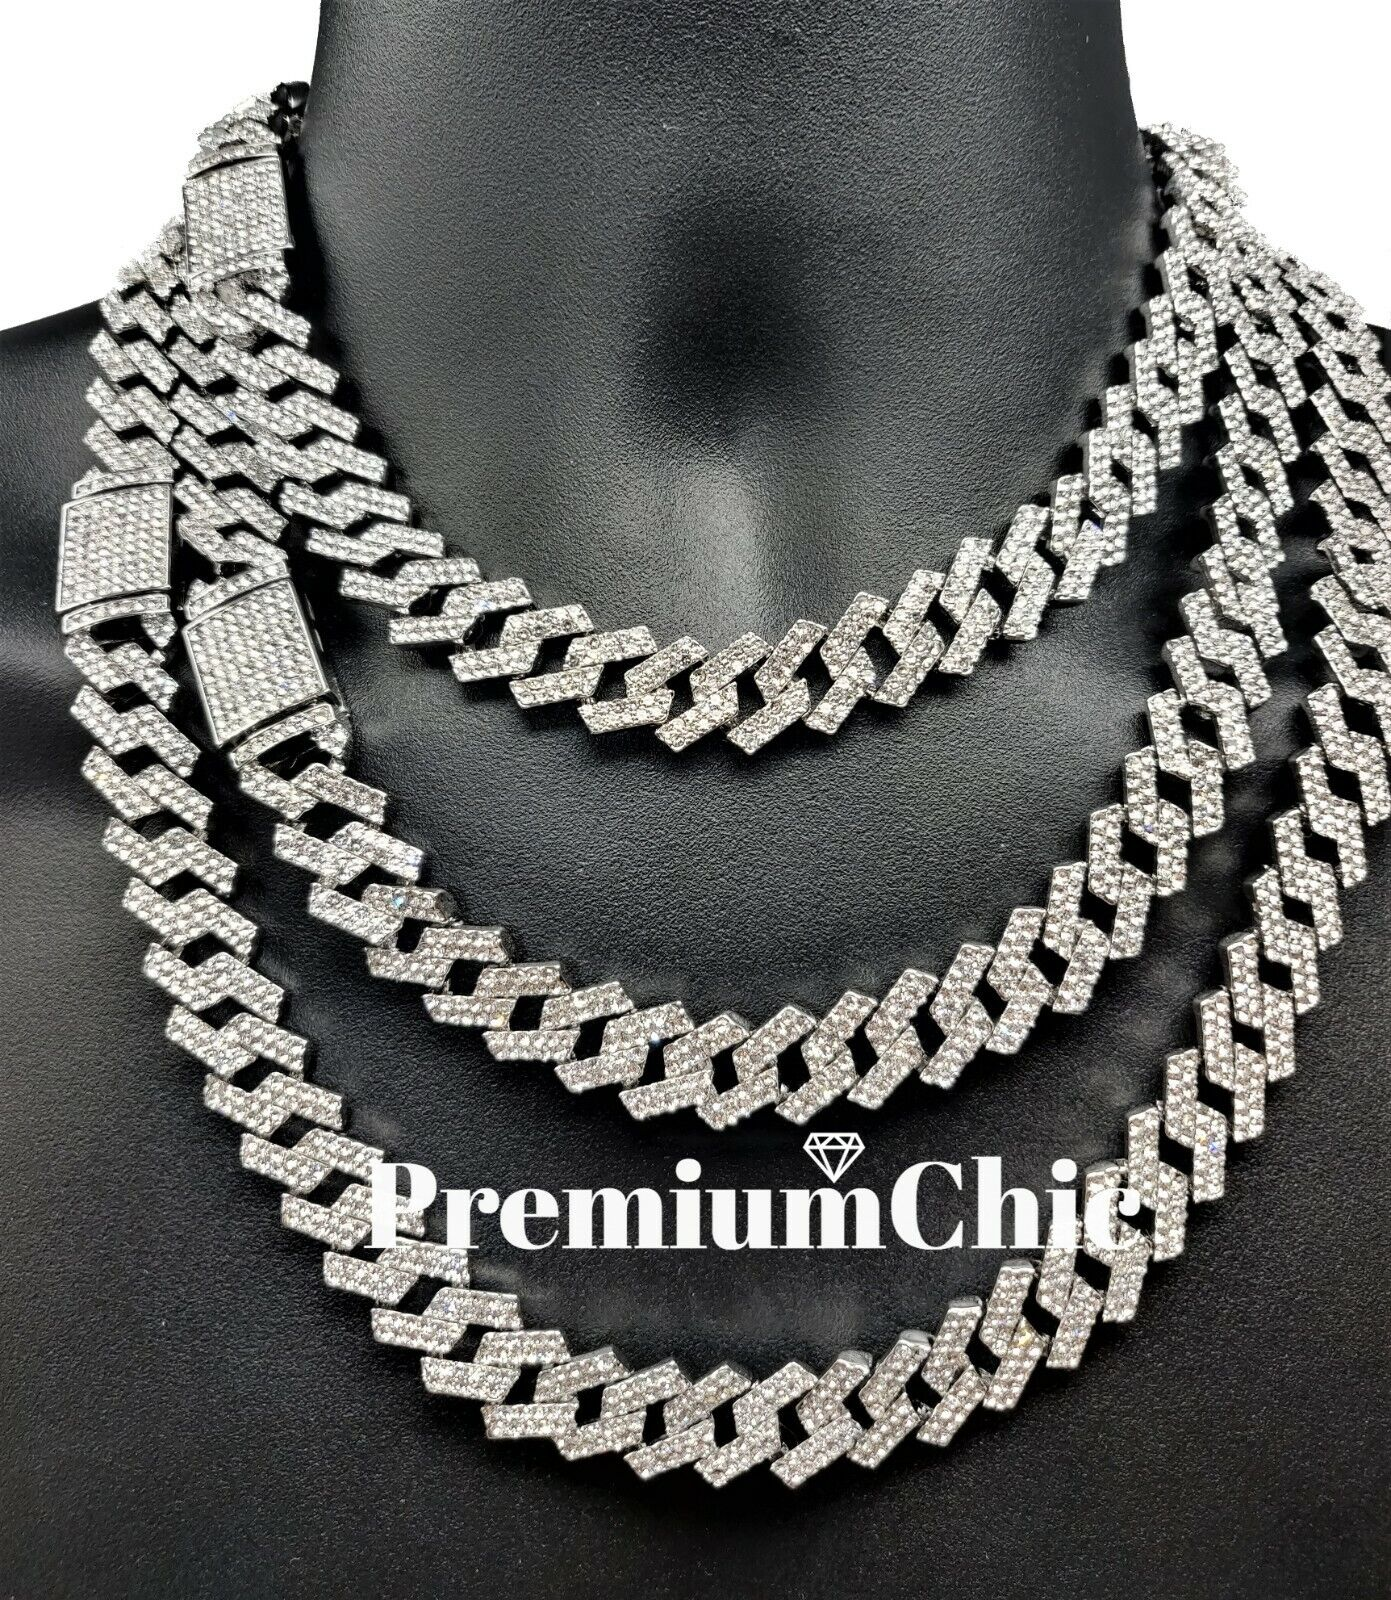 Jewellery - ICED Miami Cuban Link Chain Necklace or Bracelet (Diamond Prong) Hip Hop Jewelry